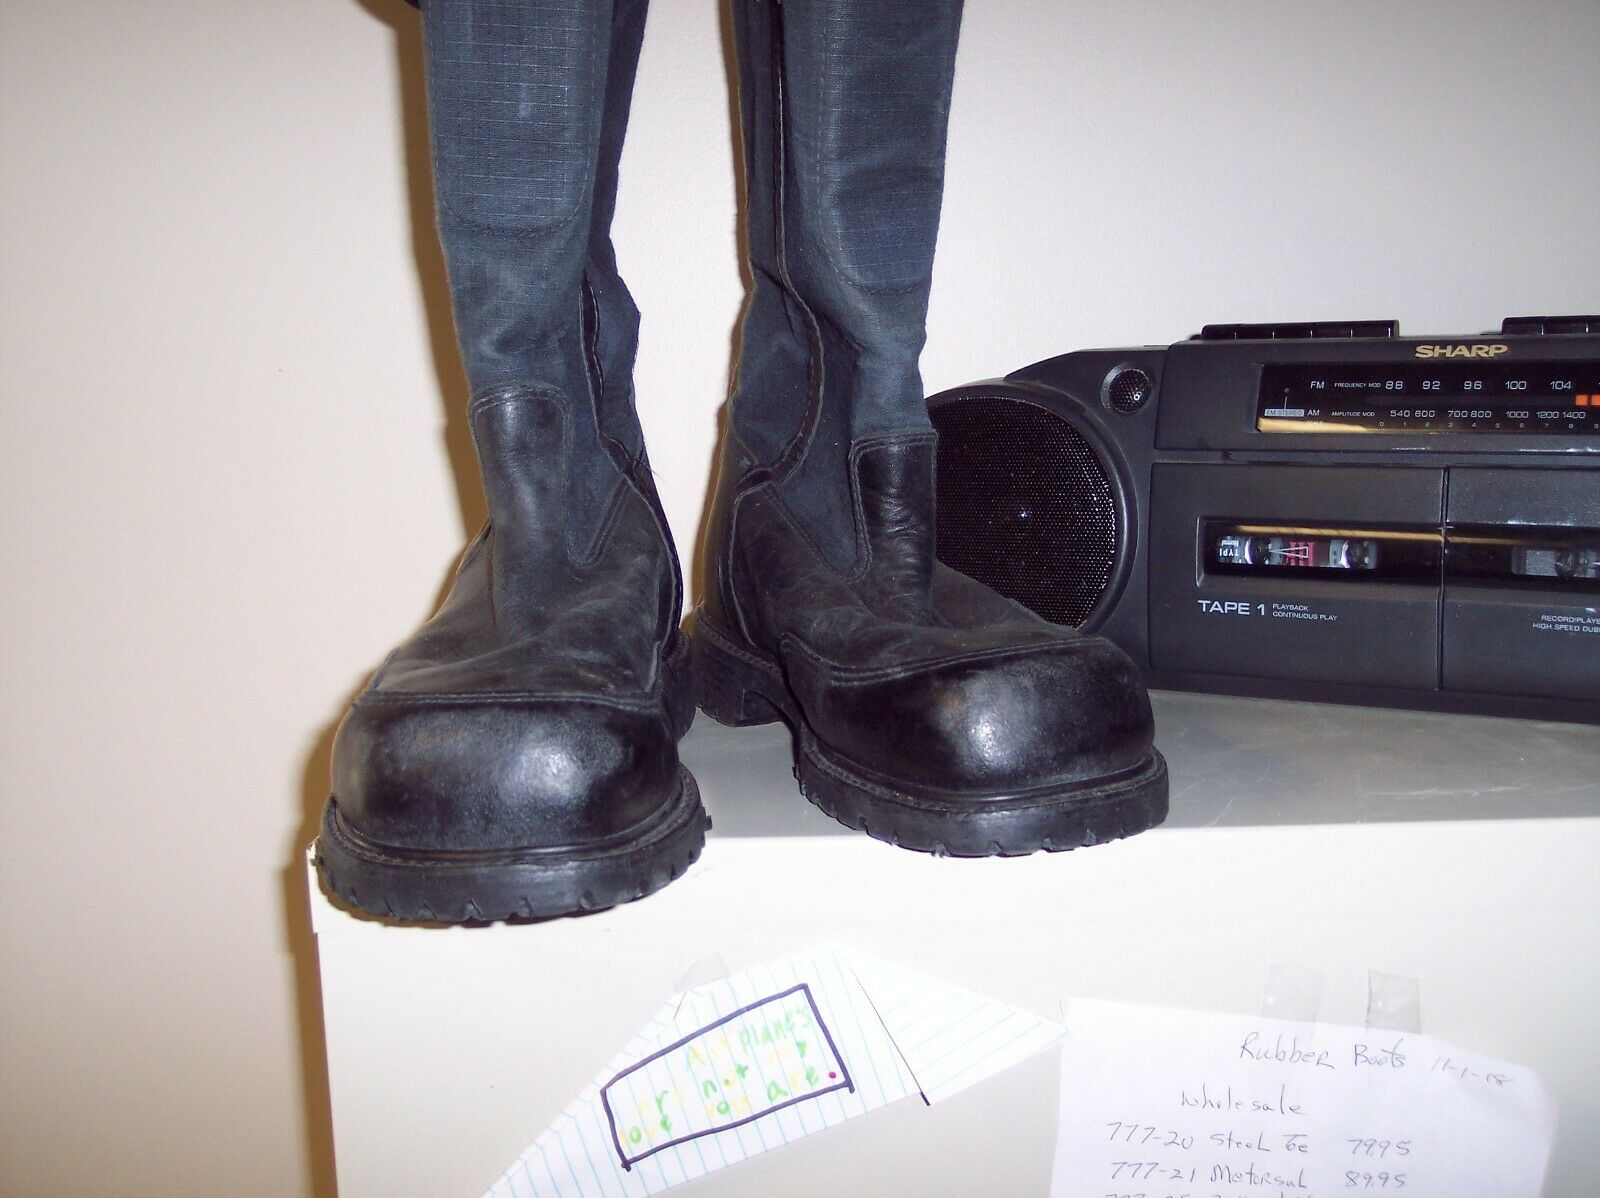 PRO-WARRINGTON STYLE 4132 FIREFIGHTER BOOTS 13EEE  FREE SHIPPING